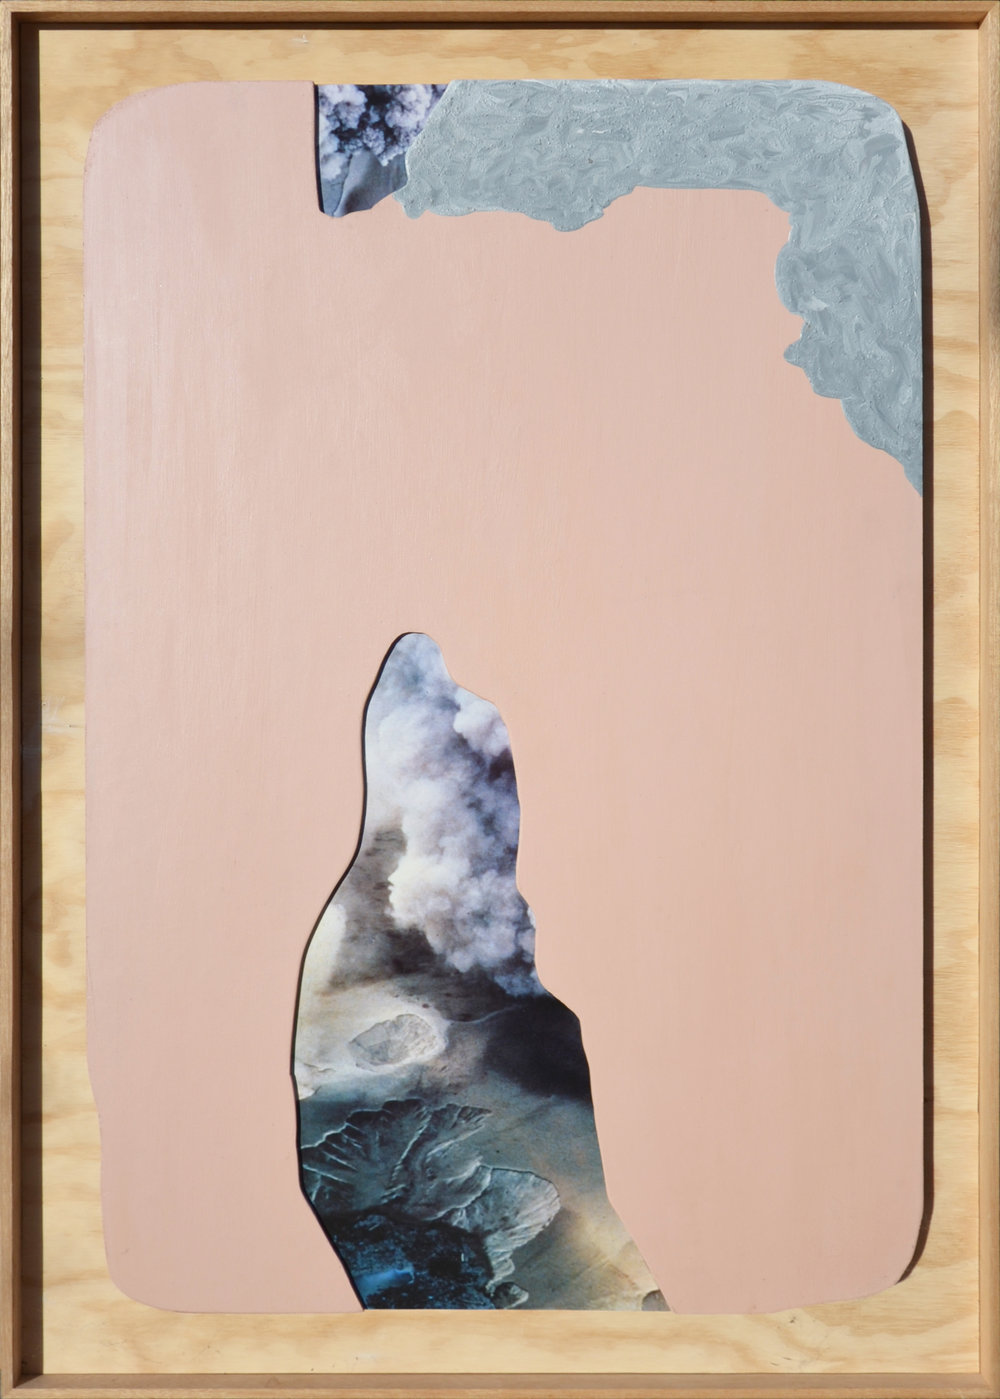 Northland, Collage, acrylic, resin on board, 80x150, 2018, Large.jpg